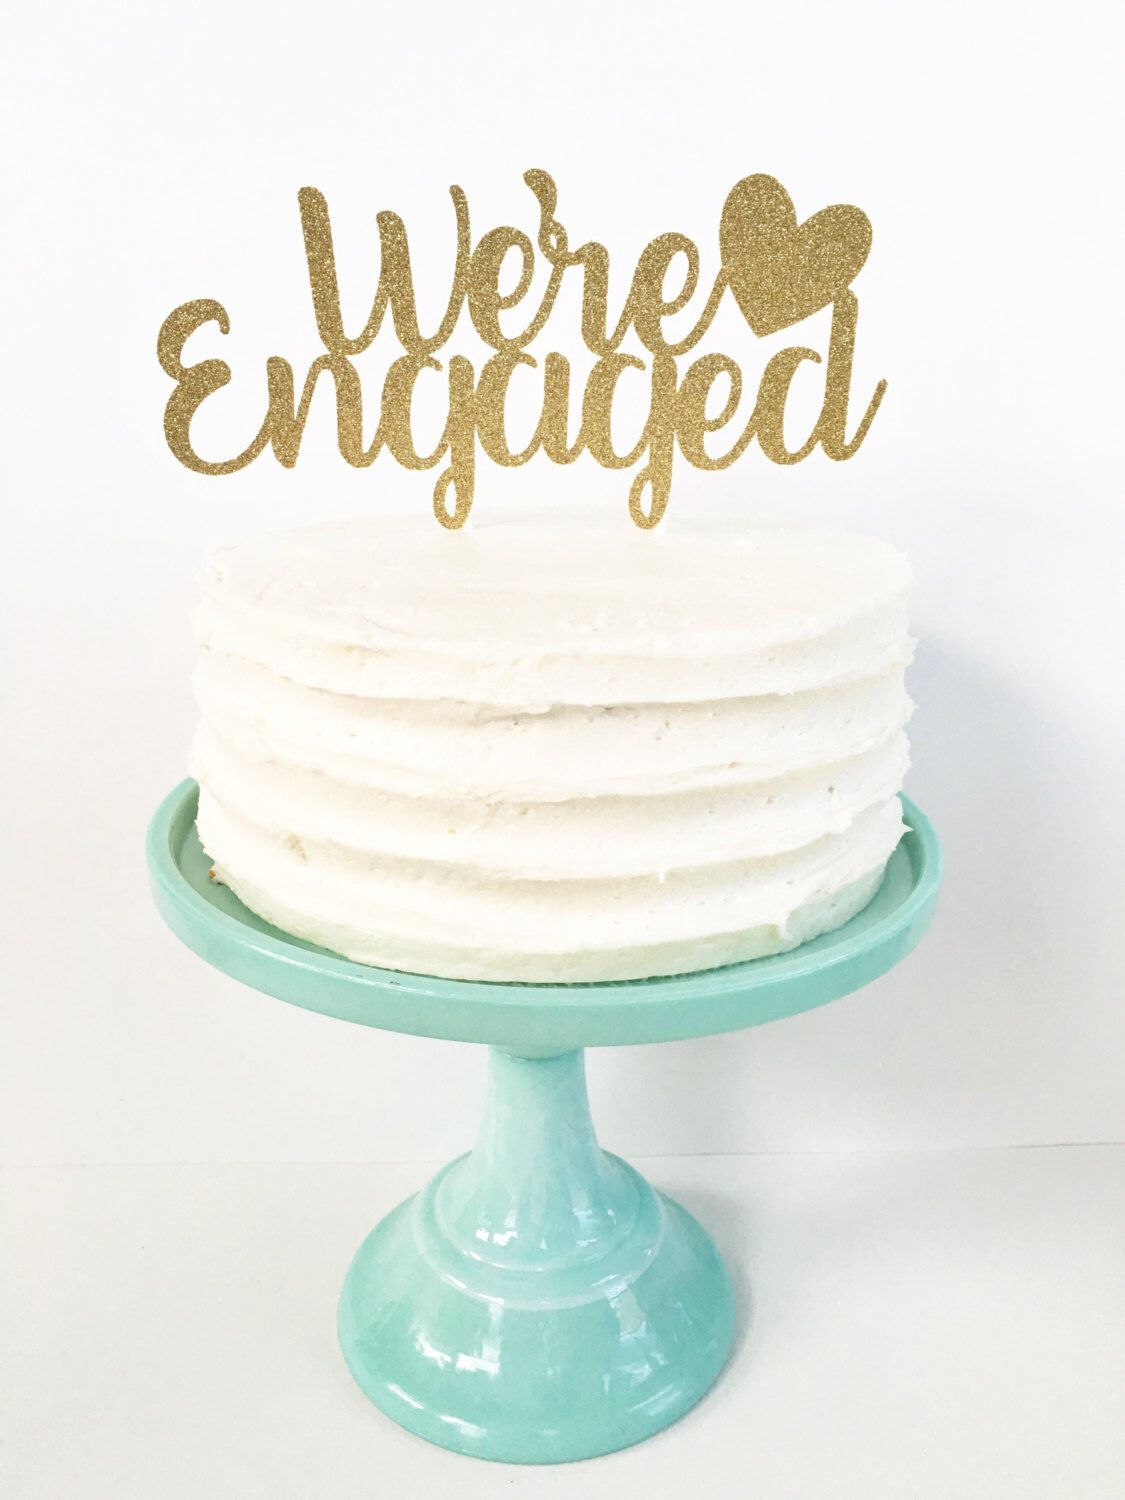 Engagement Cake Table Decorations Were Engaged Cake Topper Engagement Party Decor She Said Yes